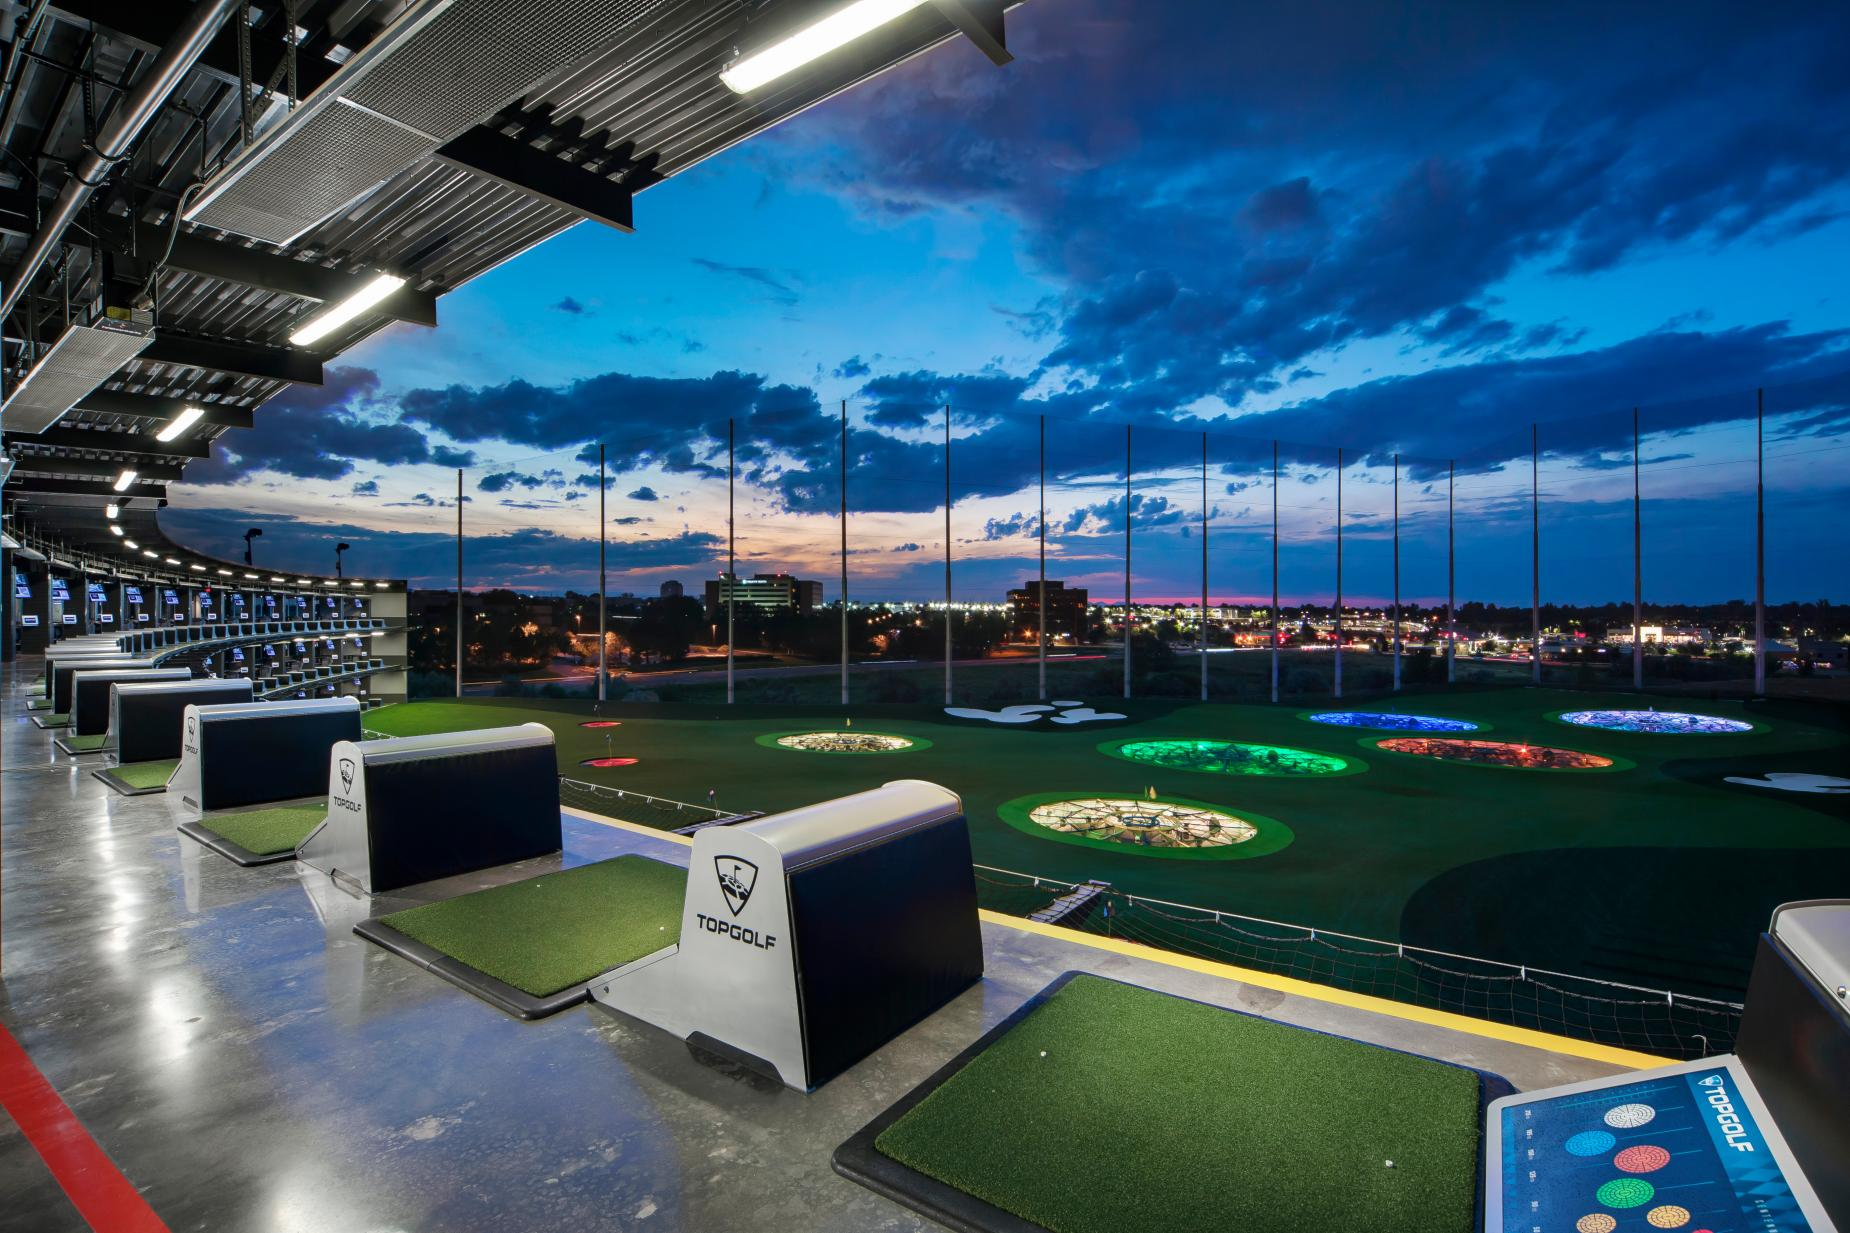 160127-topgolf-night.jpg